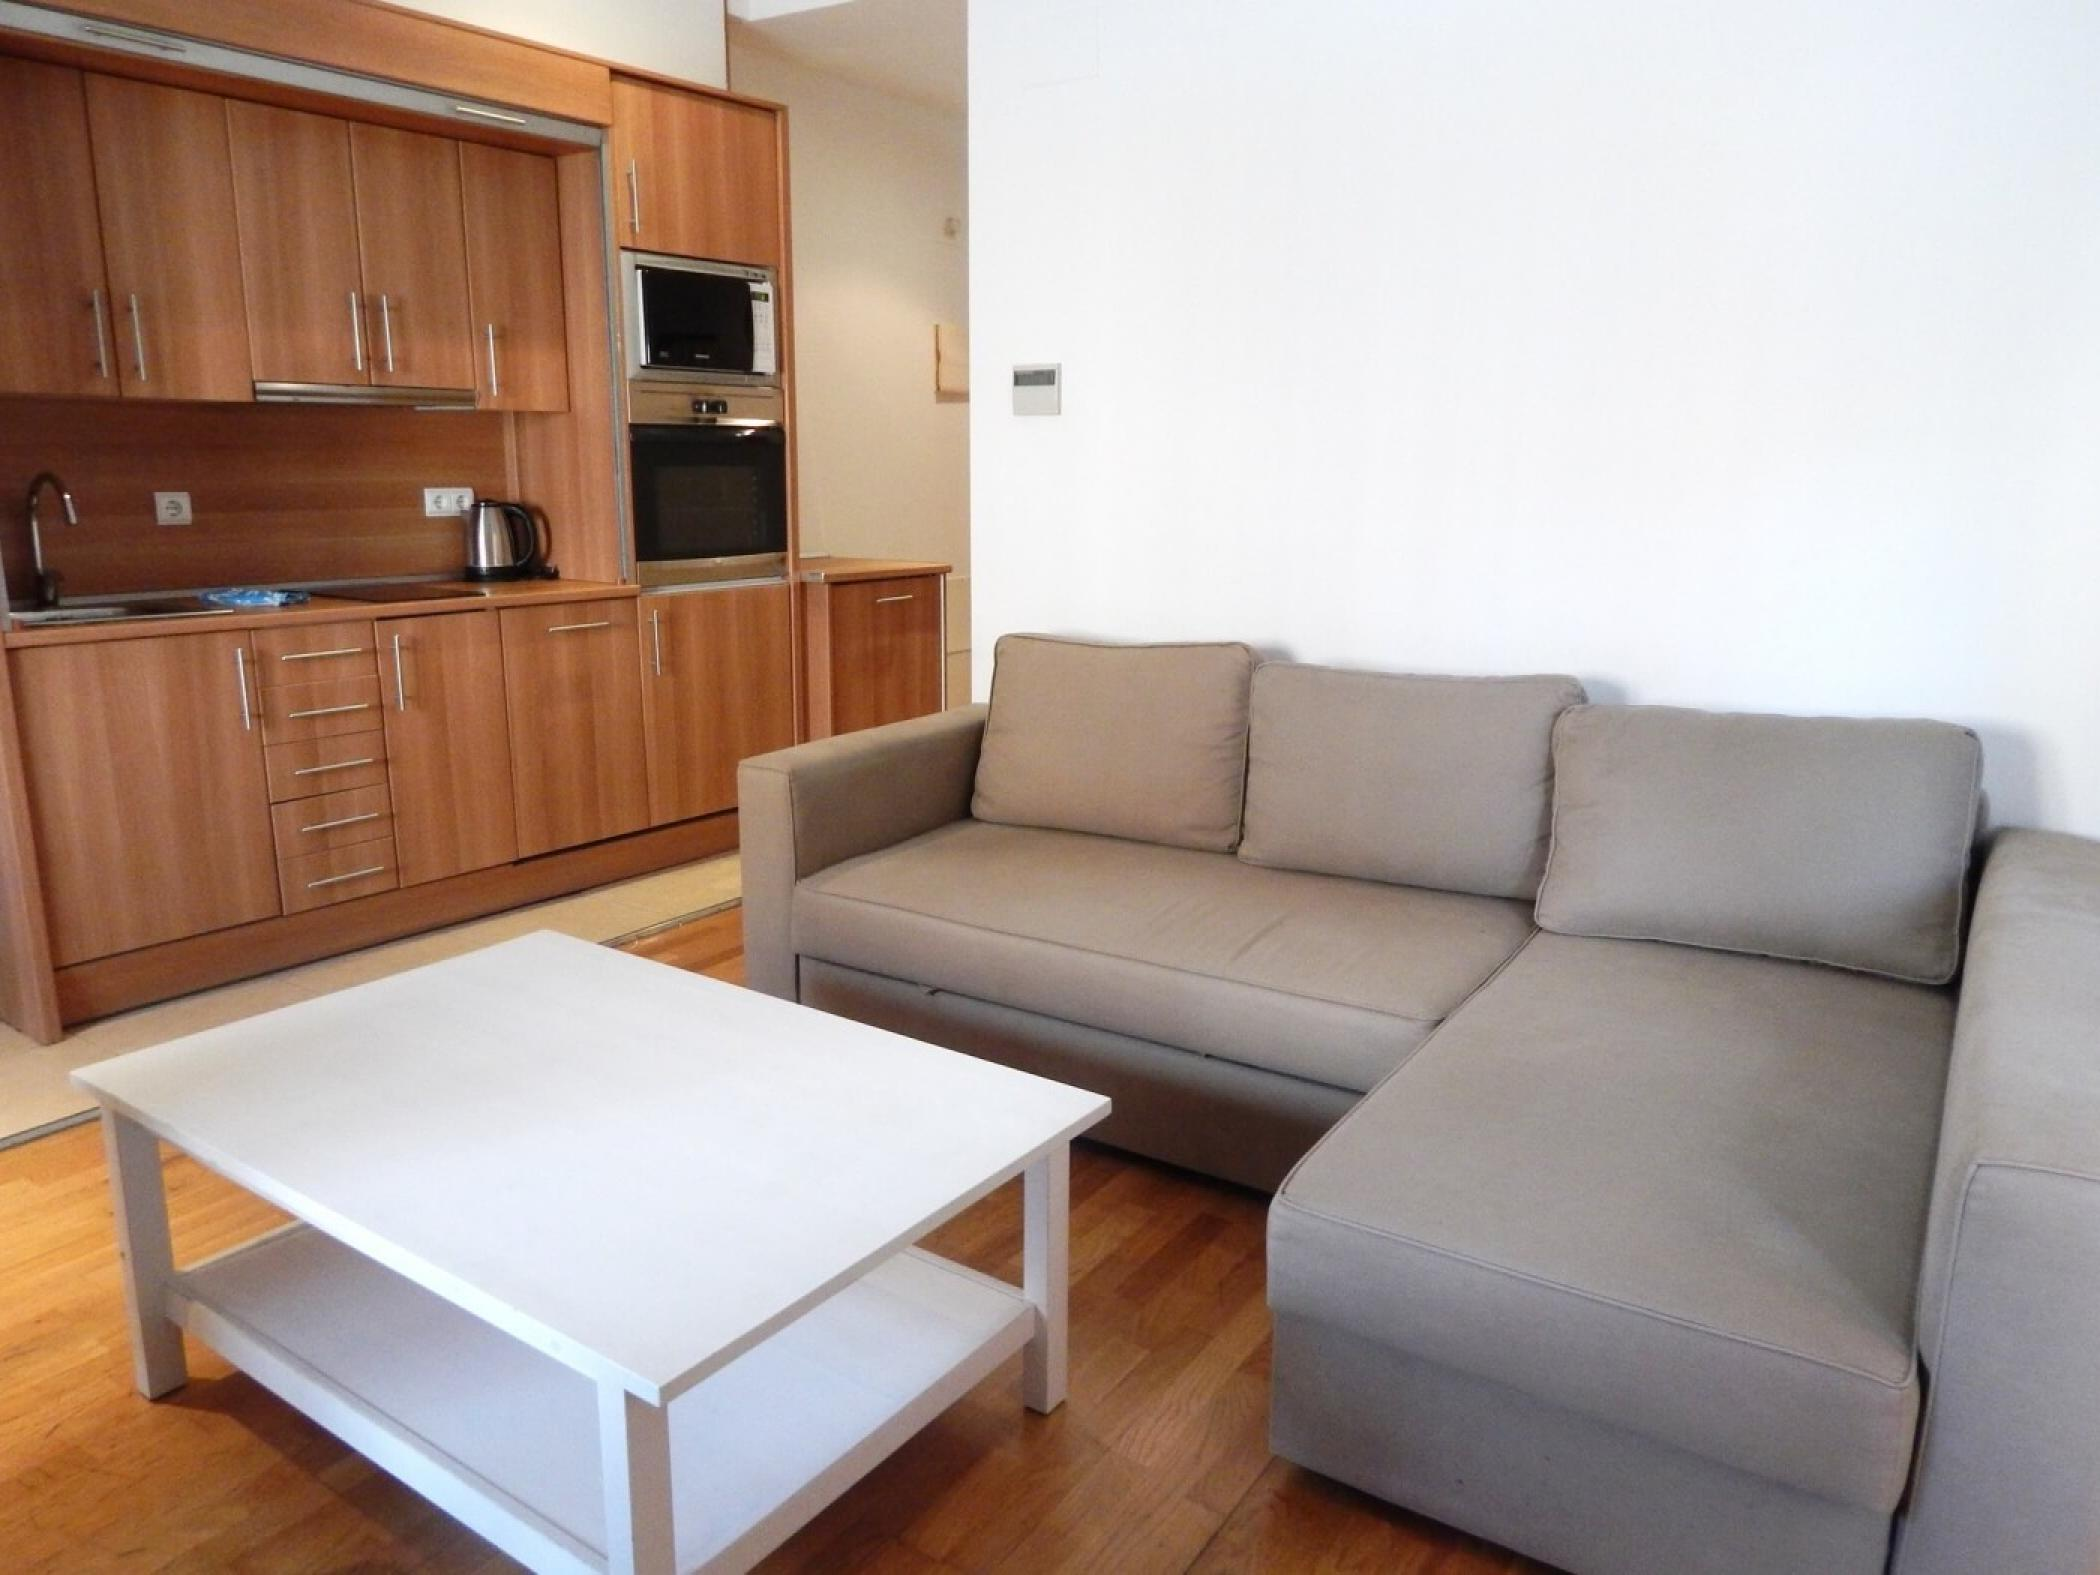 Rent Apartment in Girona - Girona Pou Rodó 22 - 5